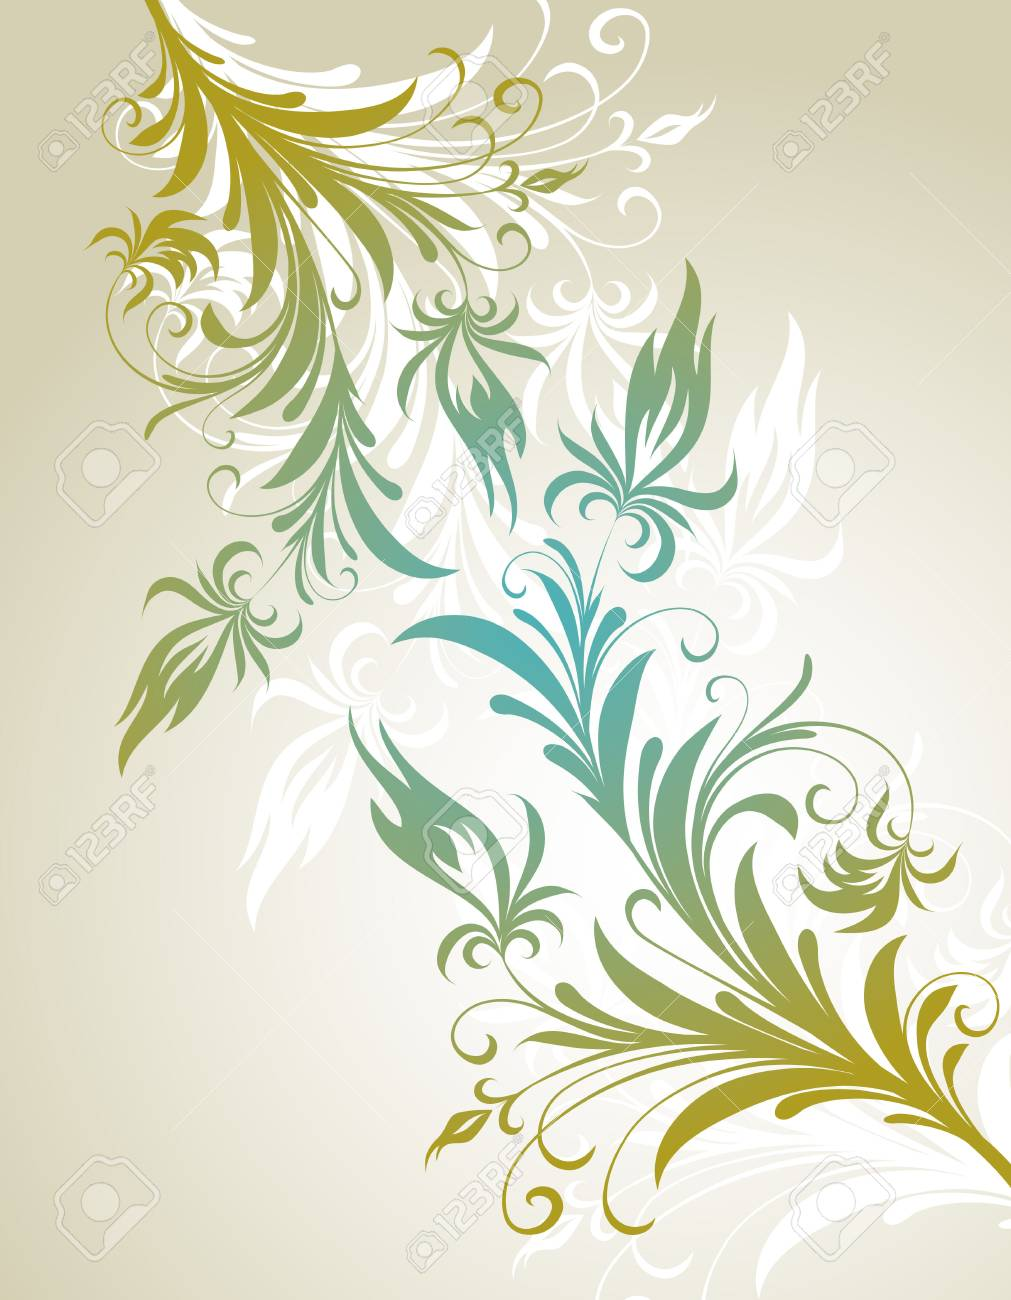 vector ornament In flower style Stock Vector - 4965813